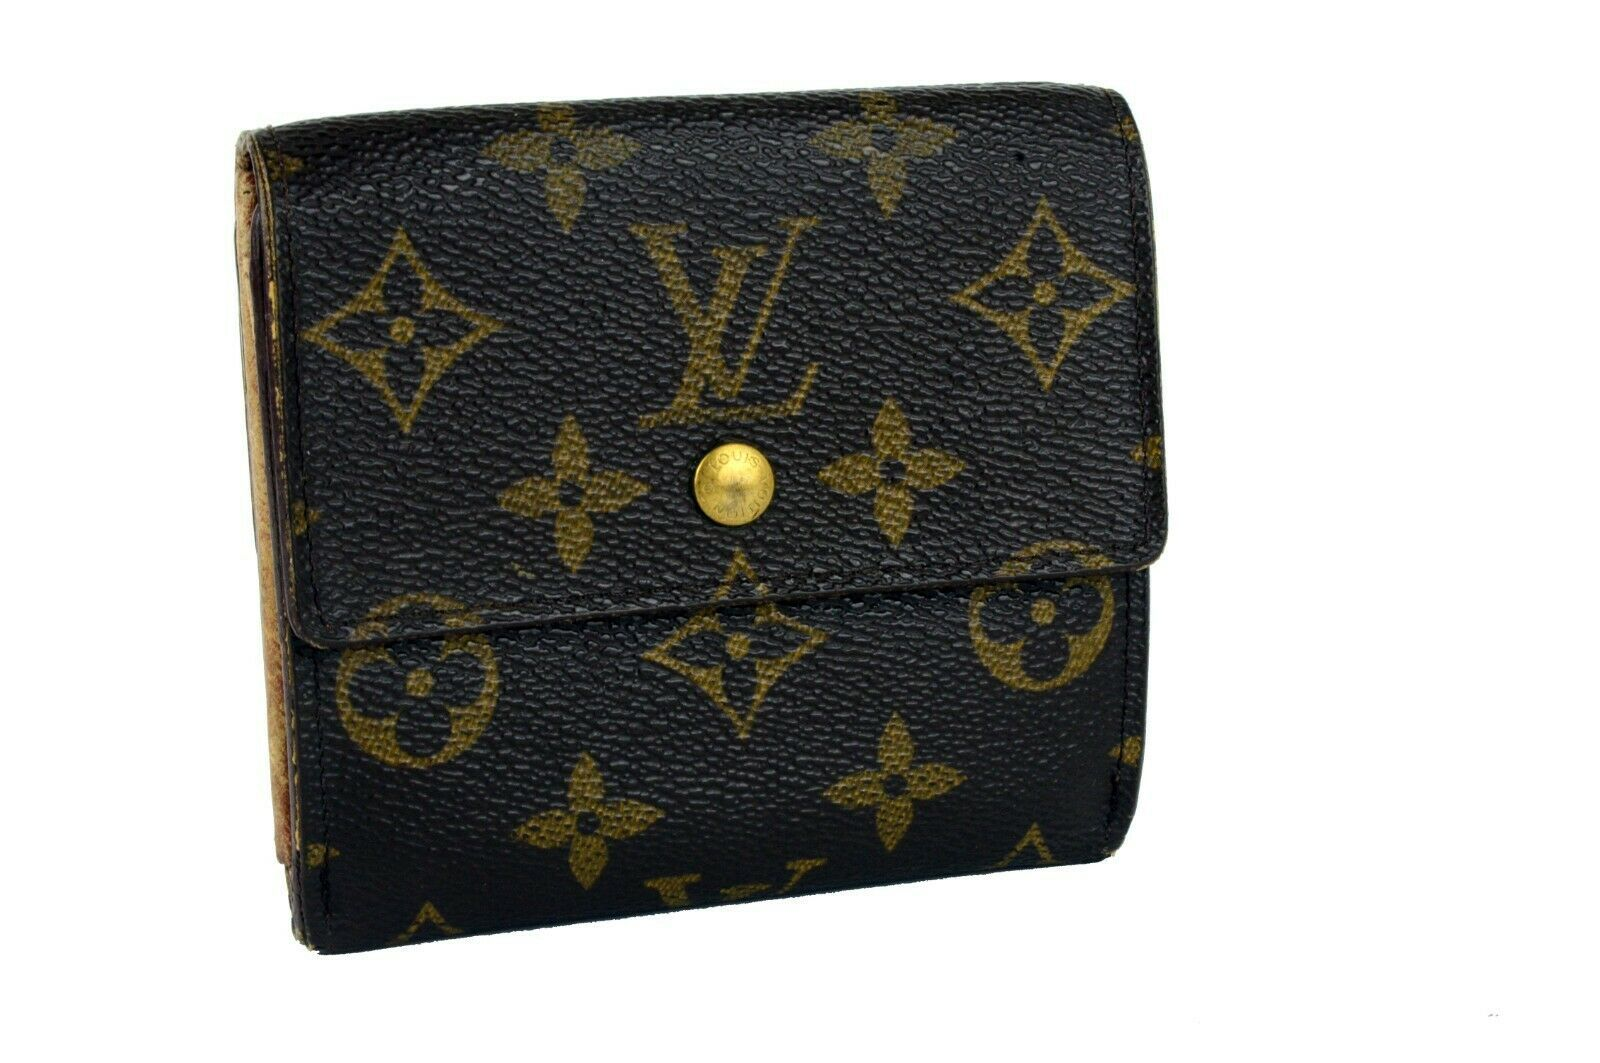 Primary image for Authentic Louis Vuitton Monogram Canvas Mini Lin Trifold Small Wallet Purse Used